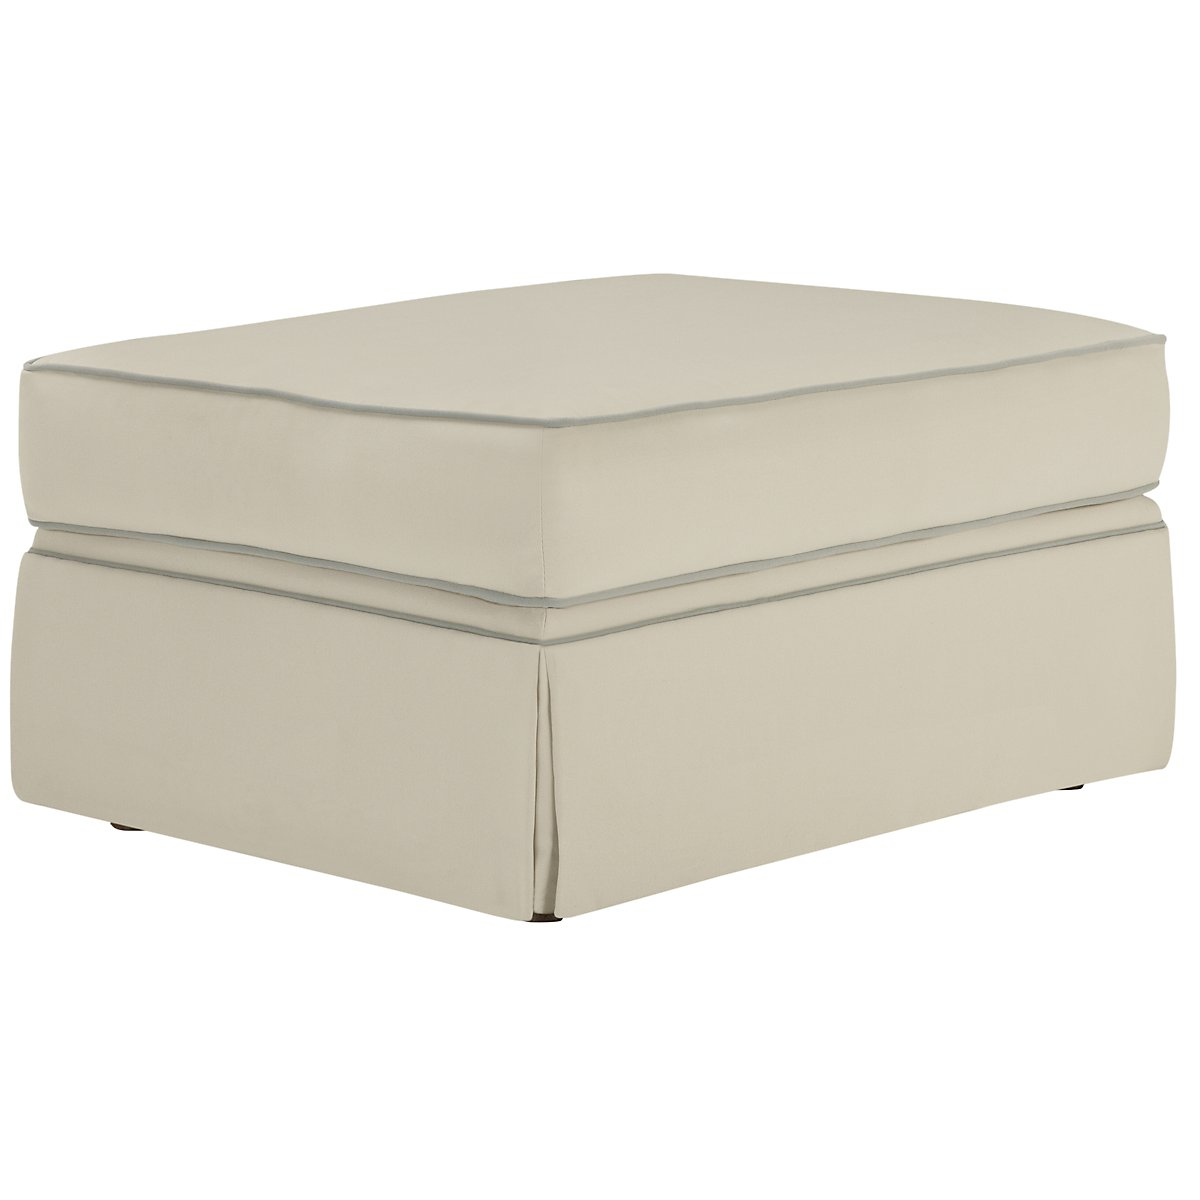 Malory Light Beige Fabric Ottoman